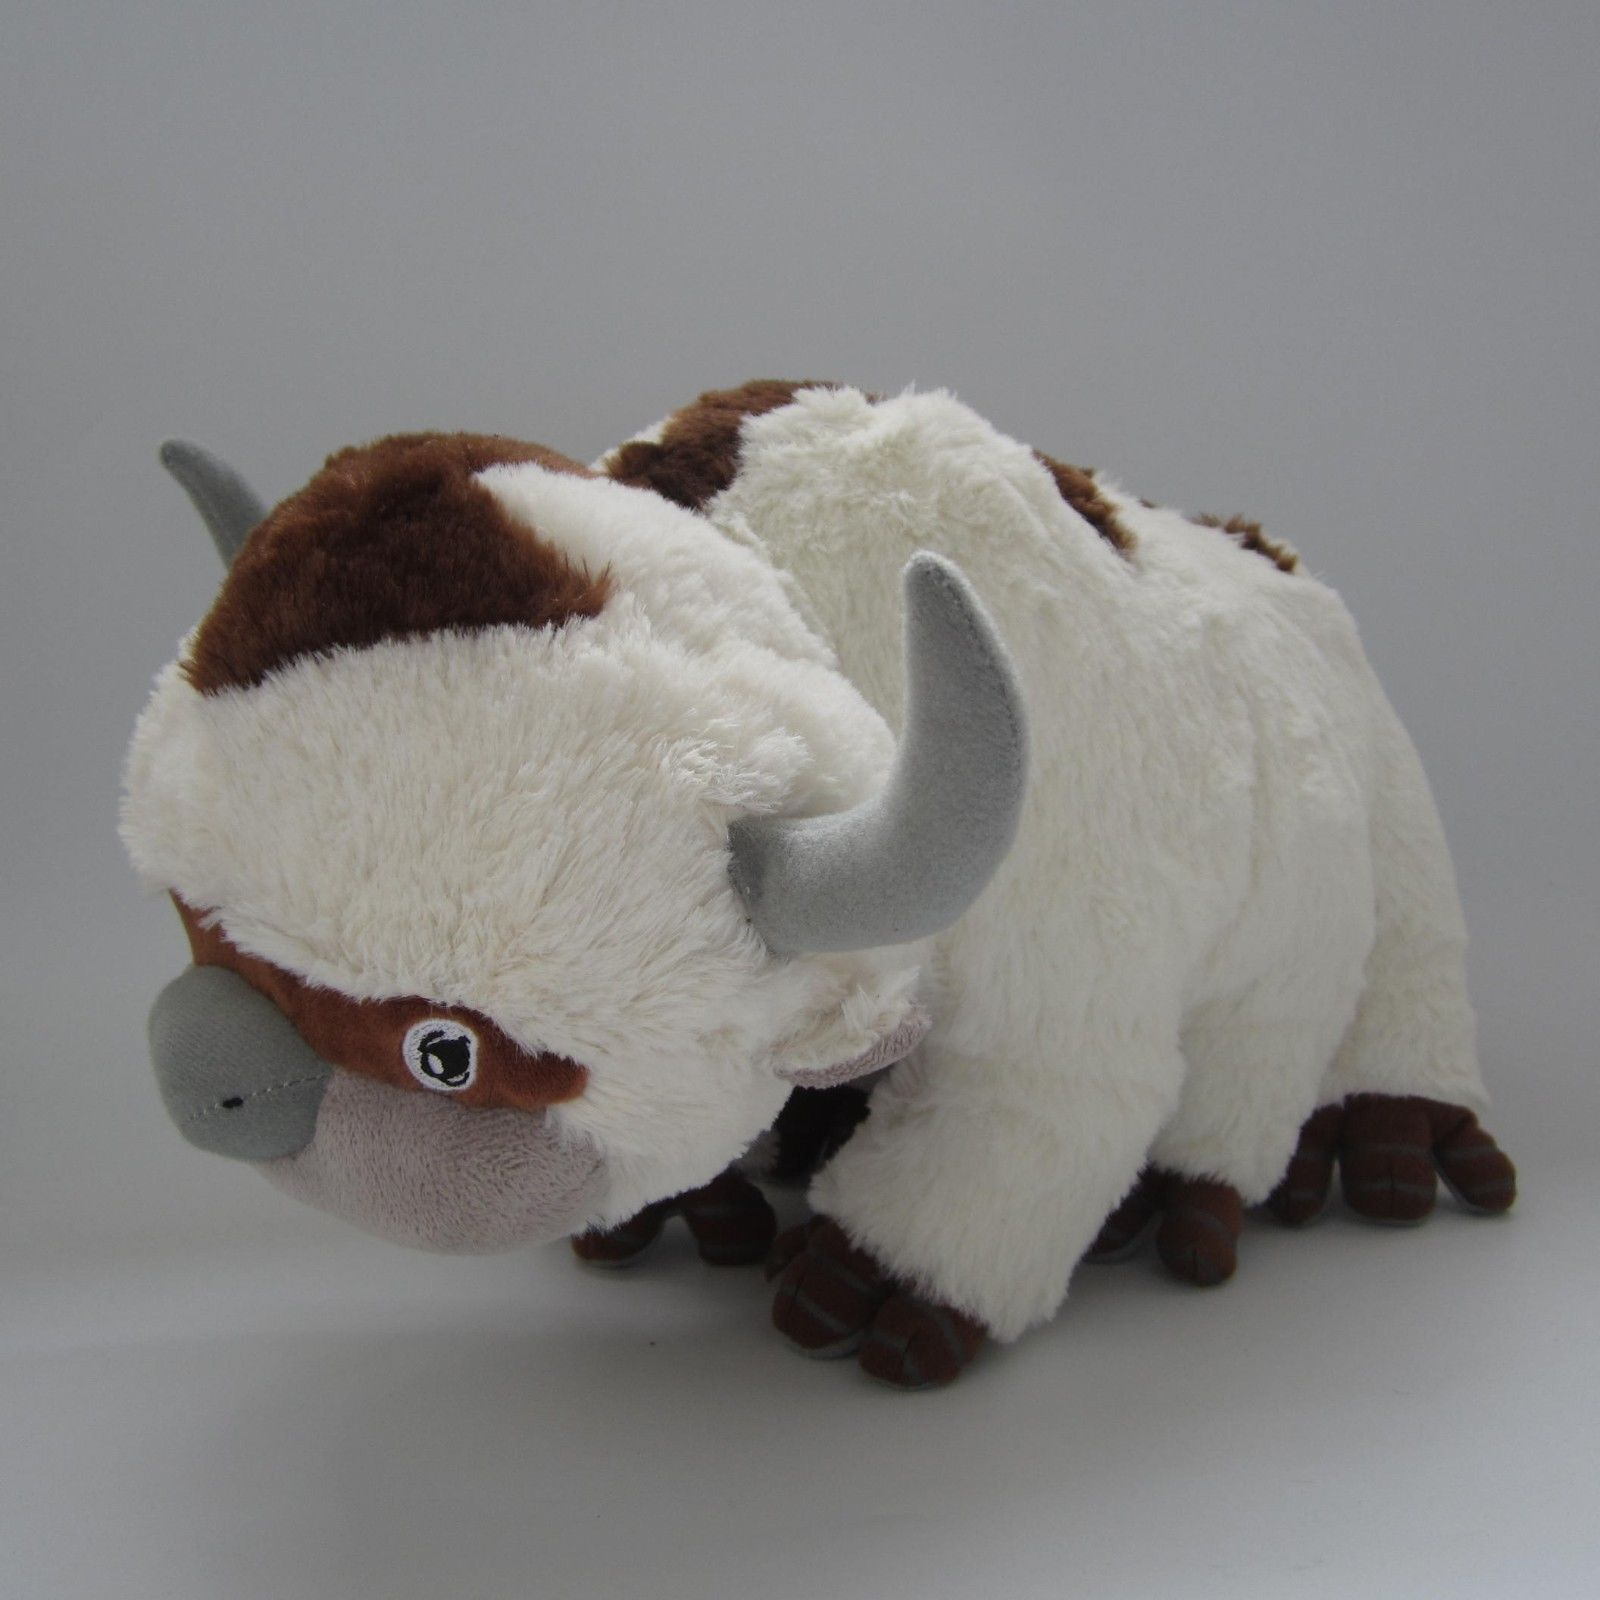 Nickelodeon 20  Appa Soft Plush Stuffed Toy From Avatar the Last Airbender